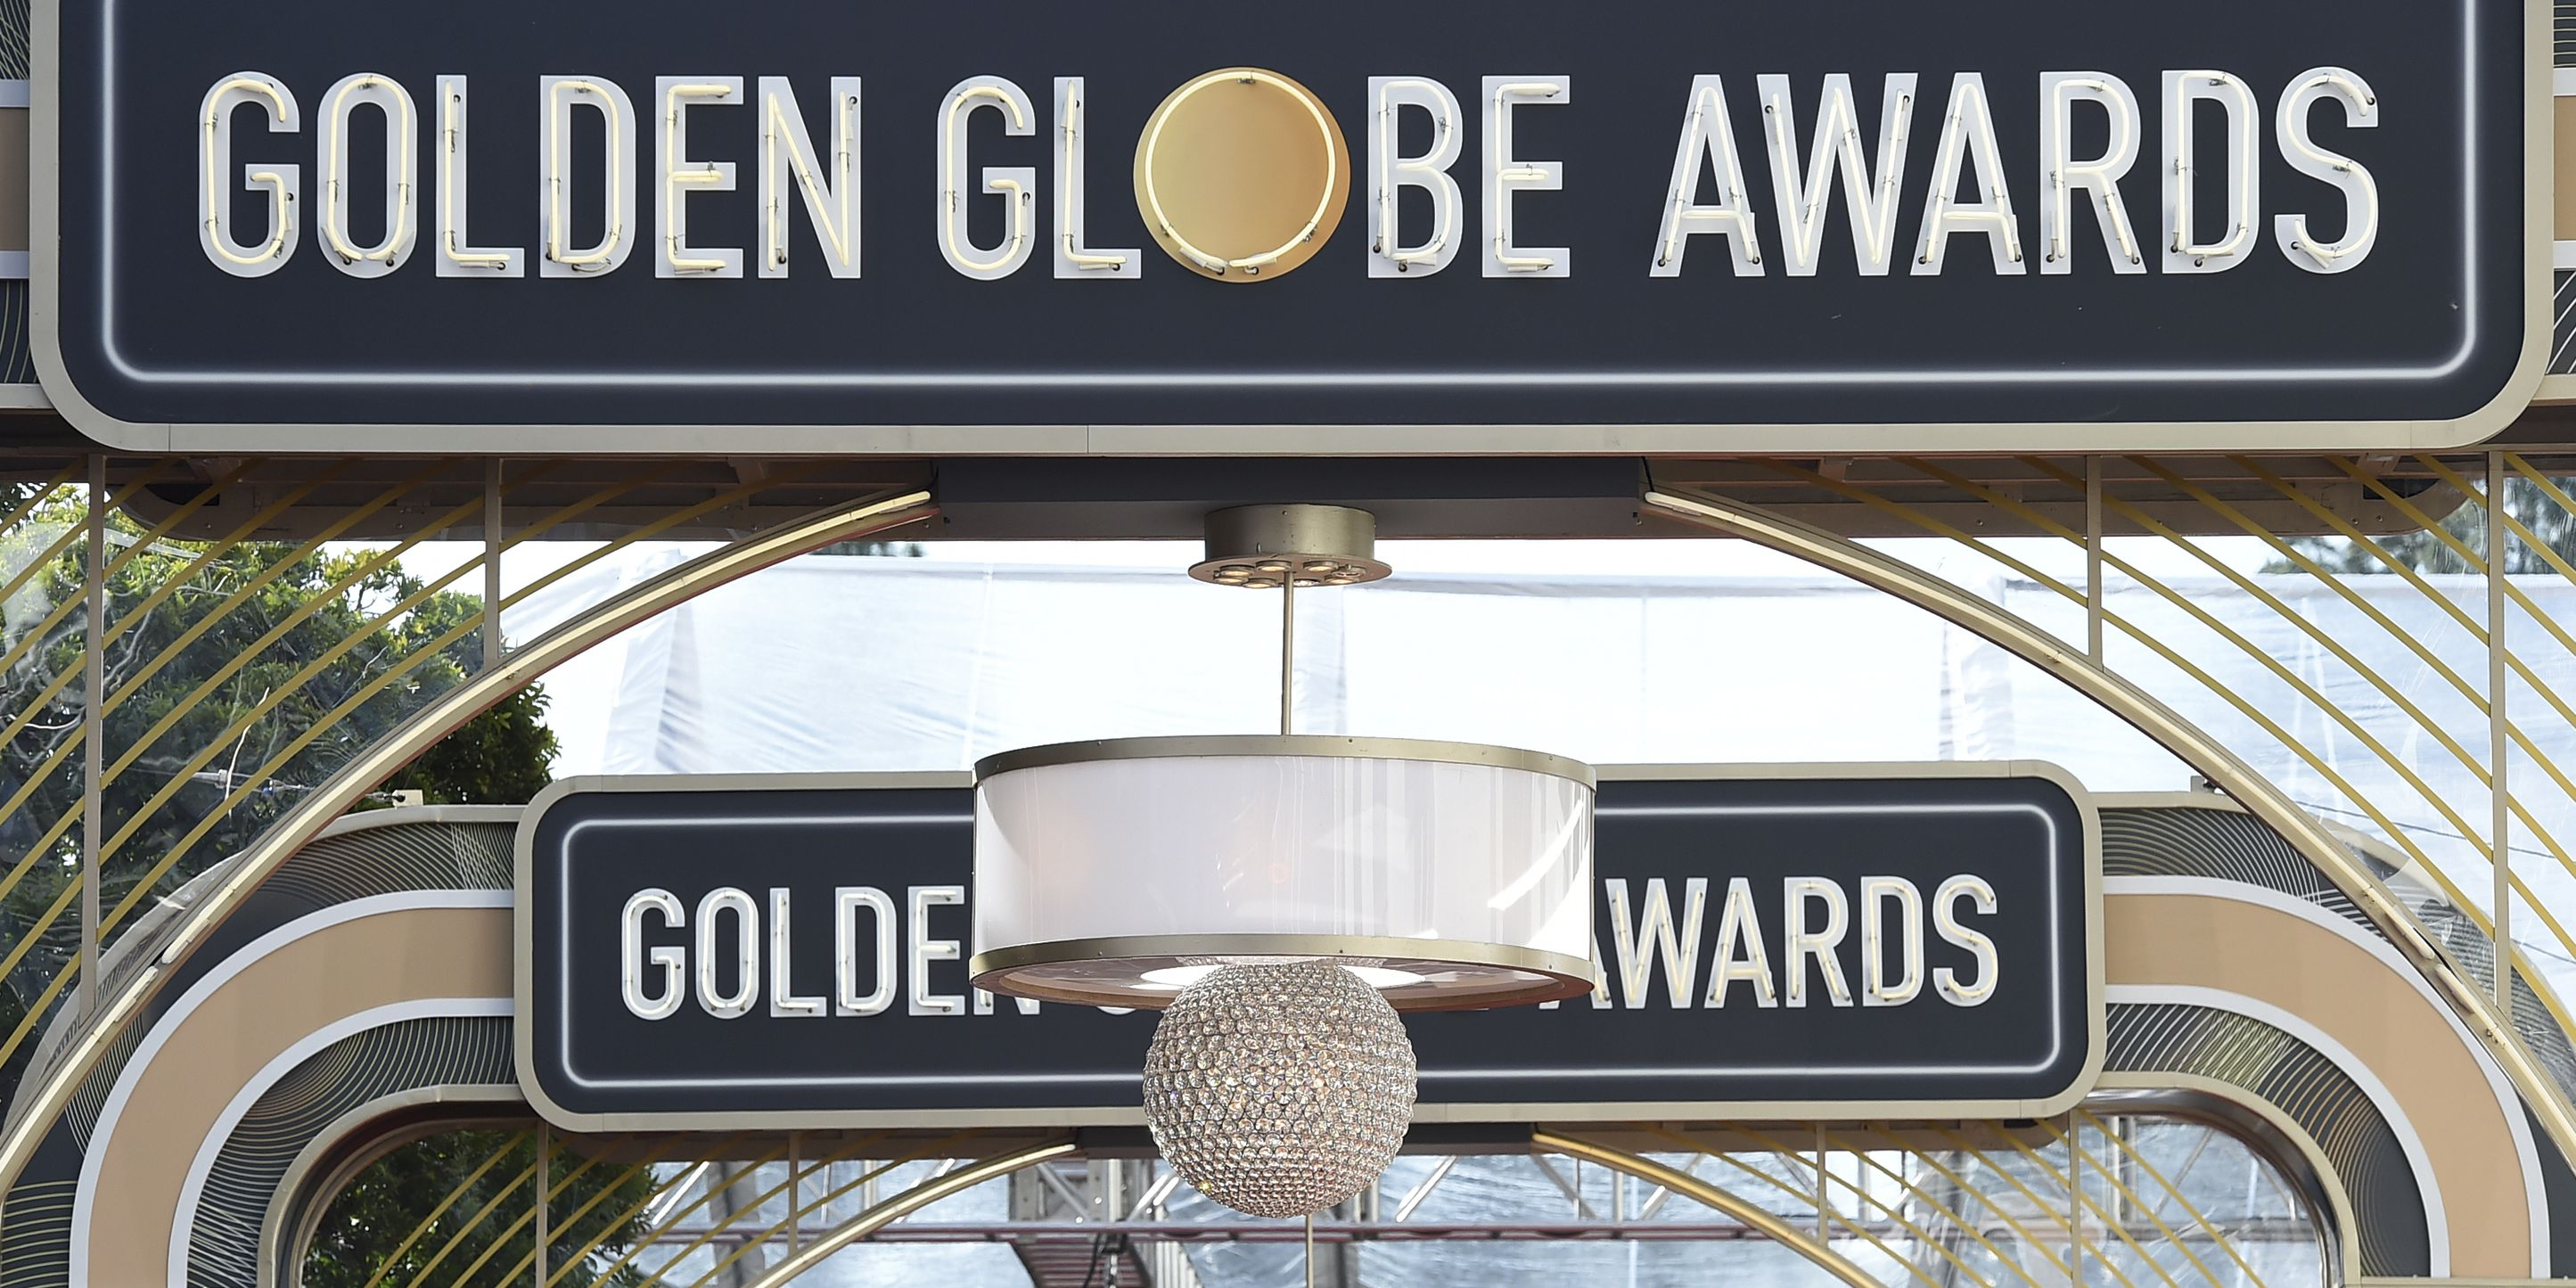 By split screen, Fey and Poehler kick off bicoastal Globes